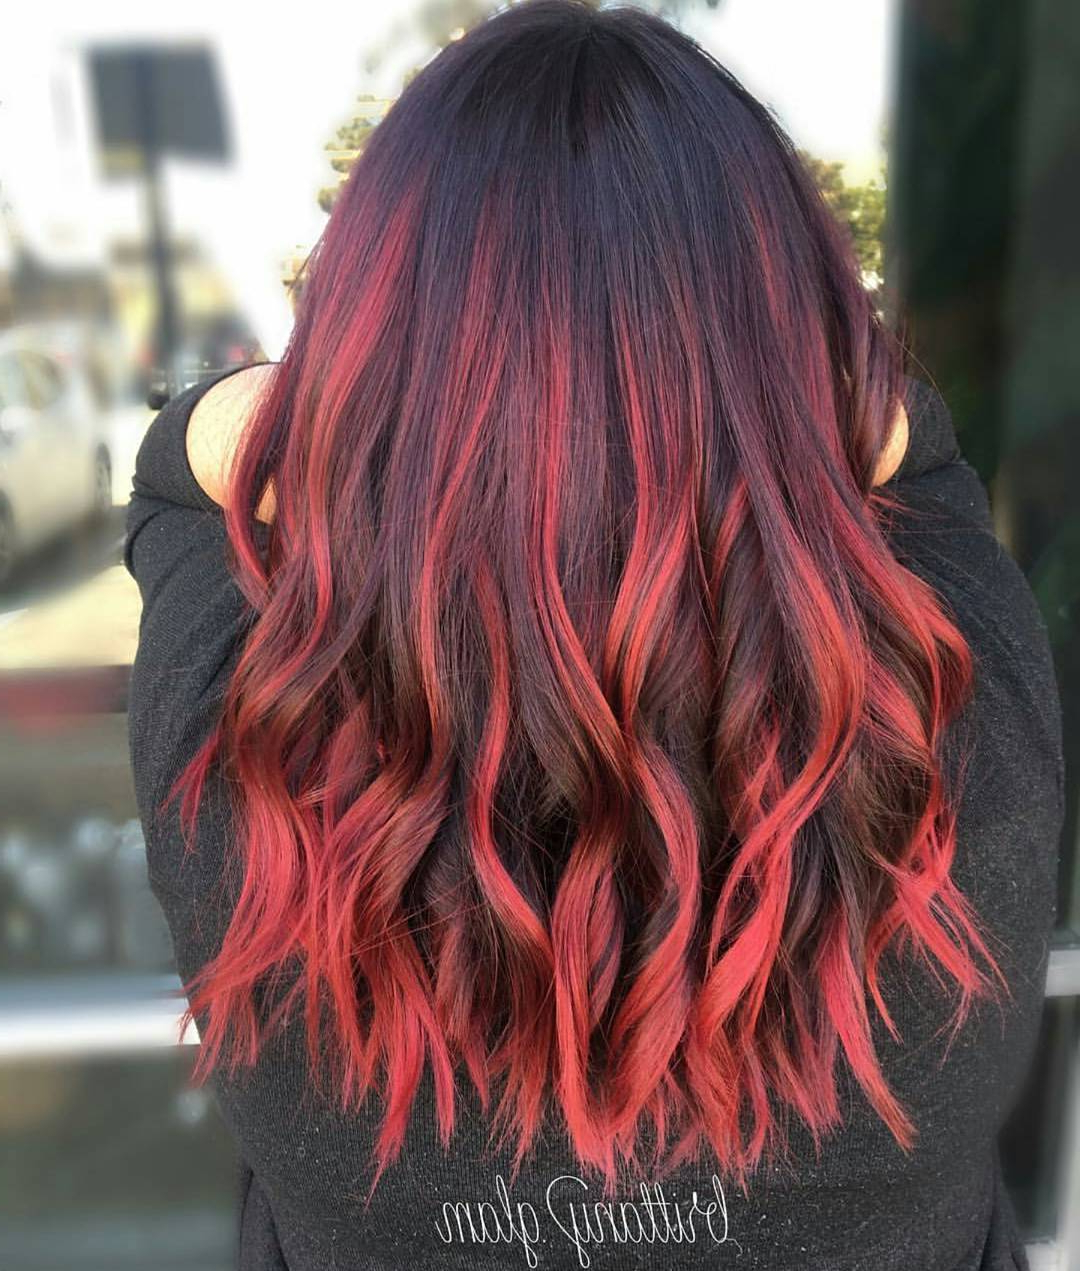 10 Medium Length Hairstyles For Thick Hair In Super Sexy Colors Inside Latest Red Hair Medium Haircuts (View 6 of 20)